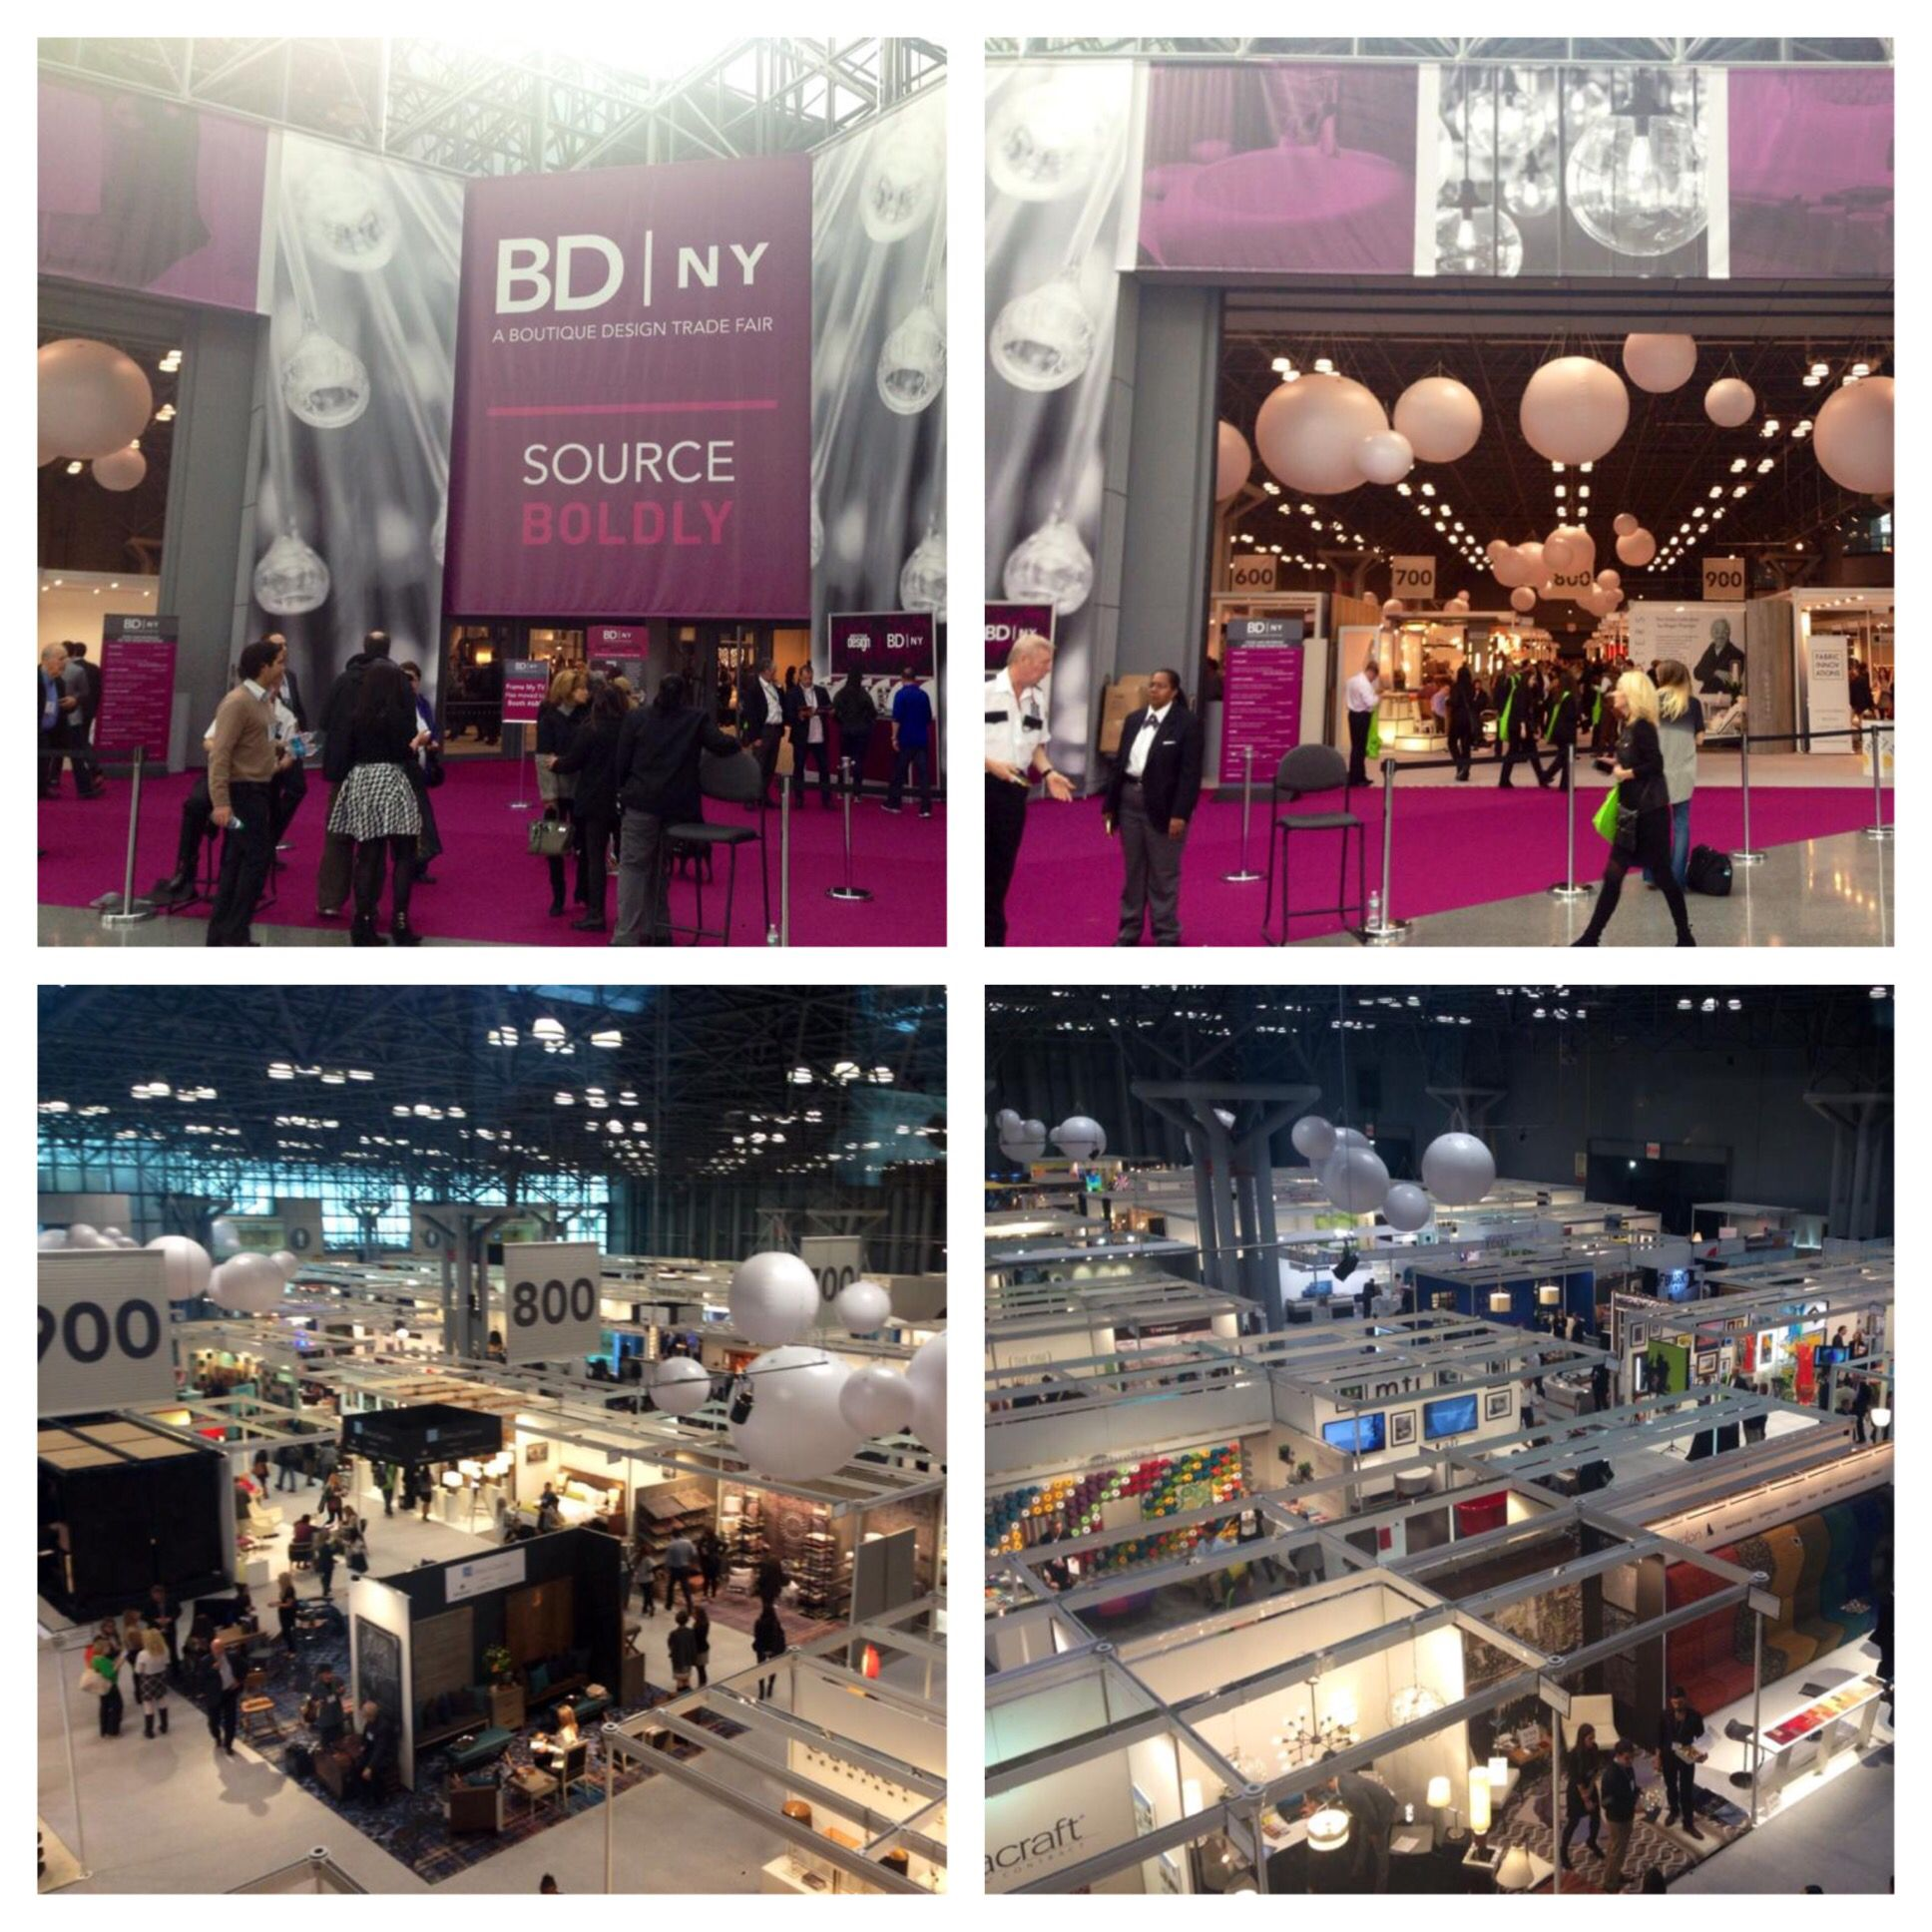 The Boutique Design Trade Fair #BDNY is looking gorgeous at the Javits Center in NYC today!